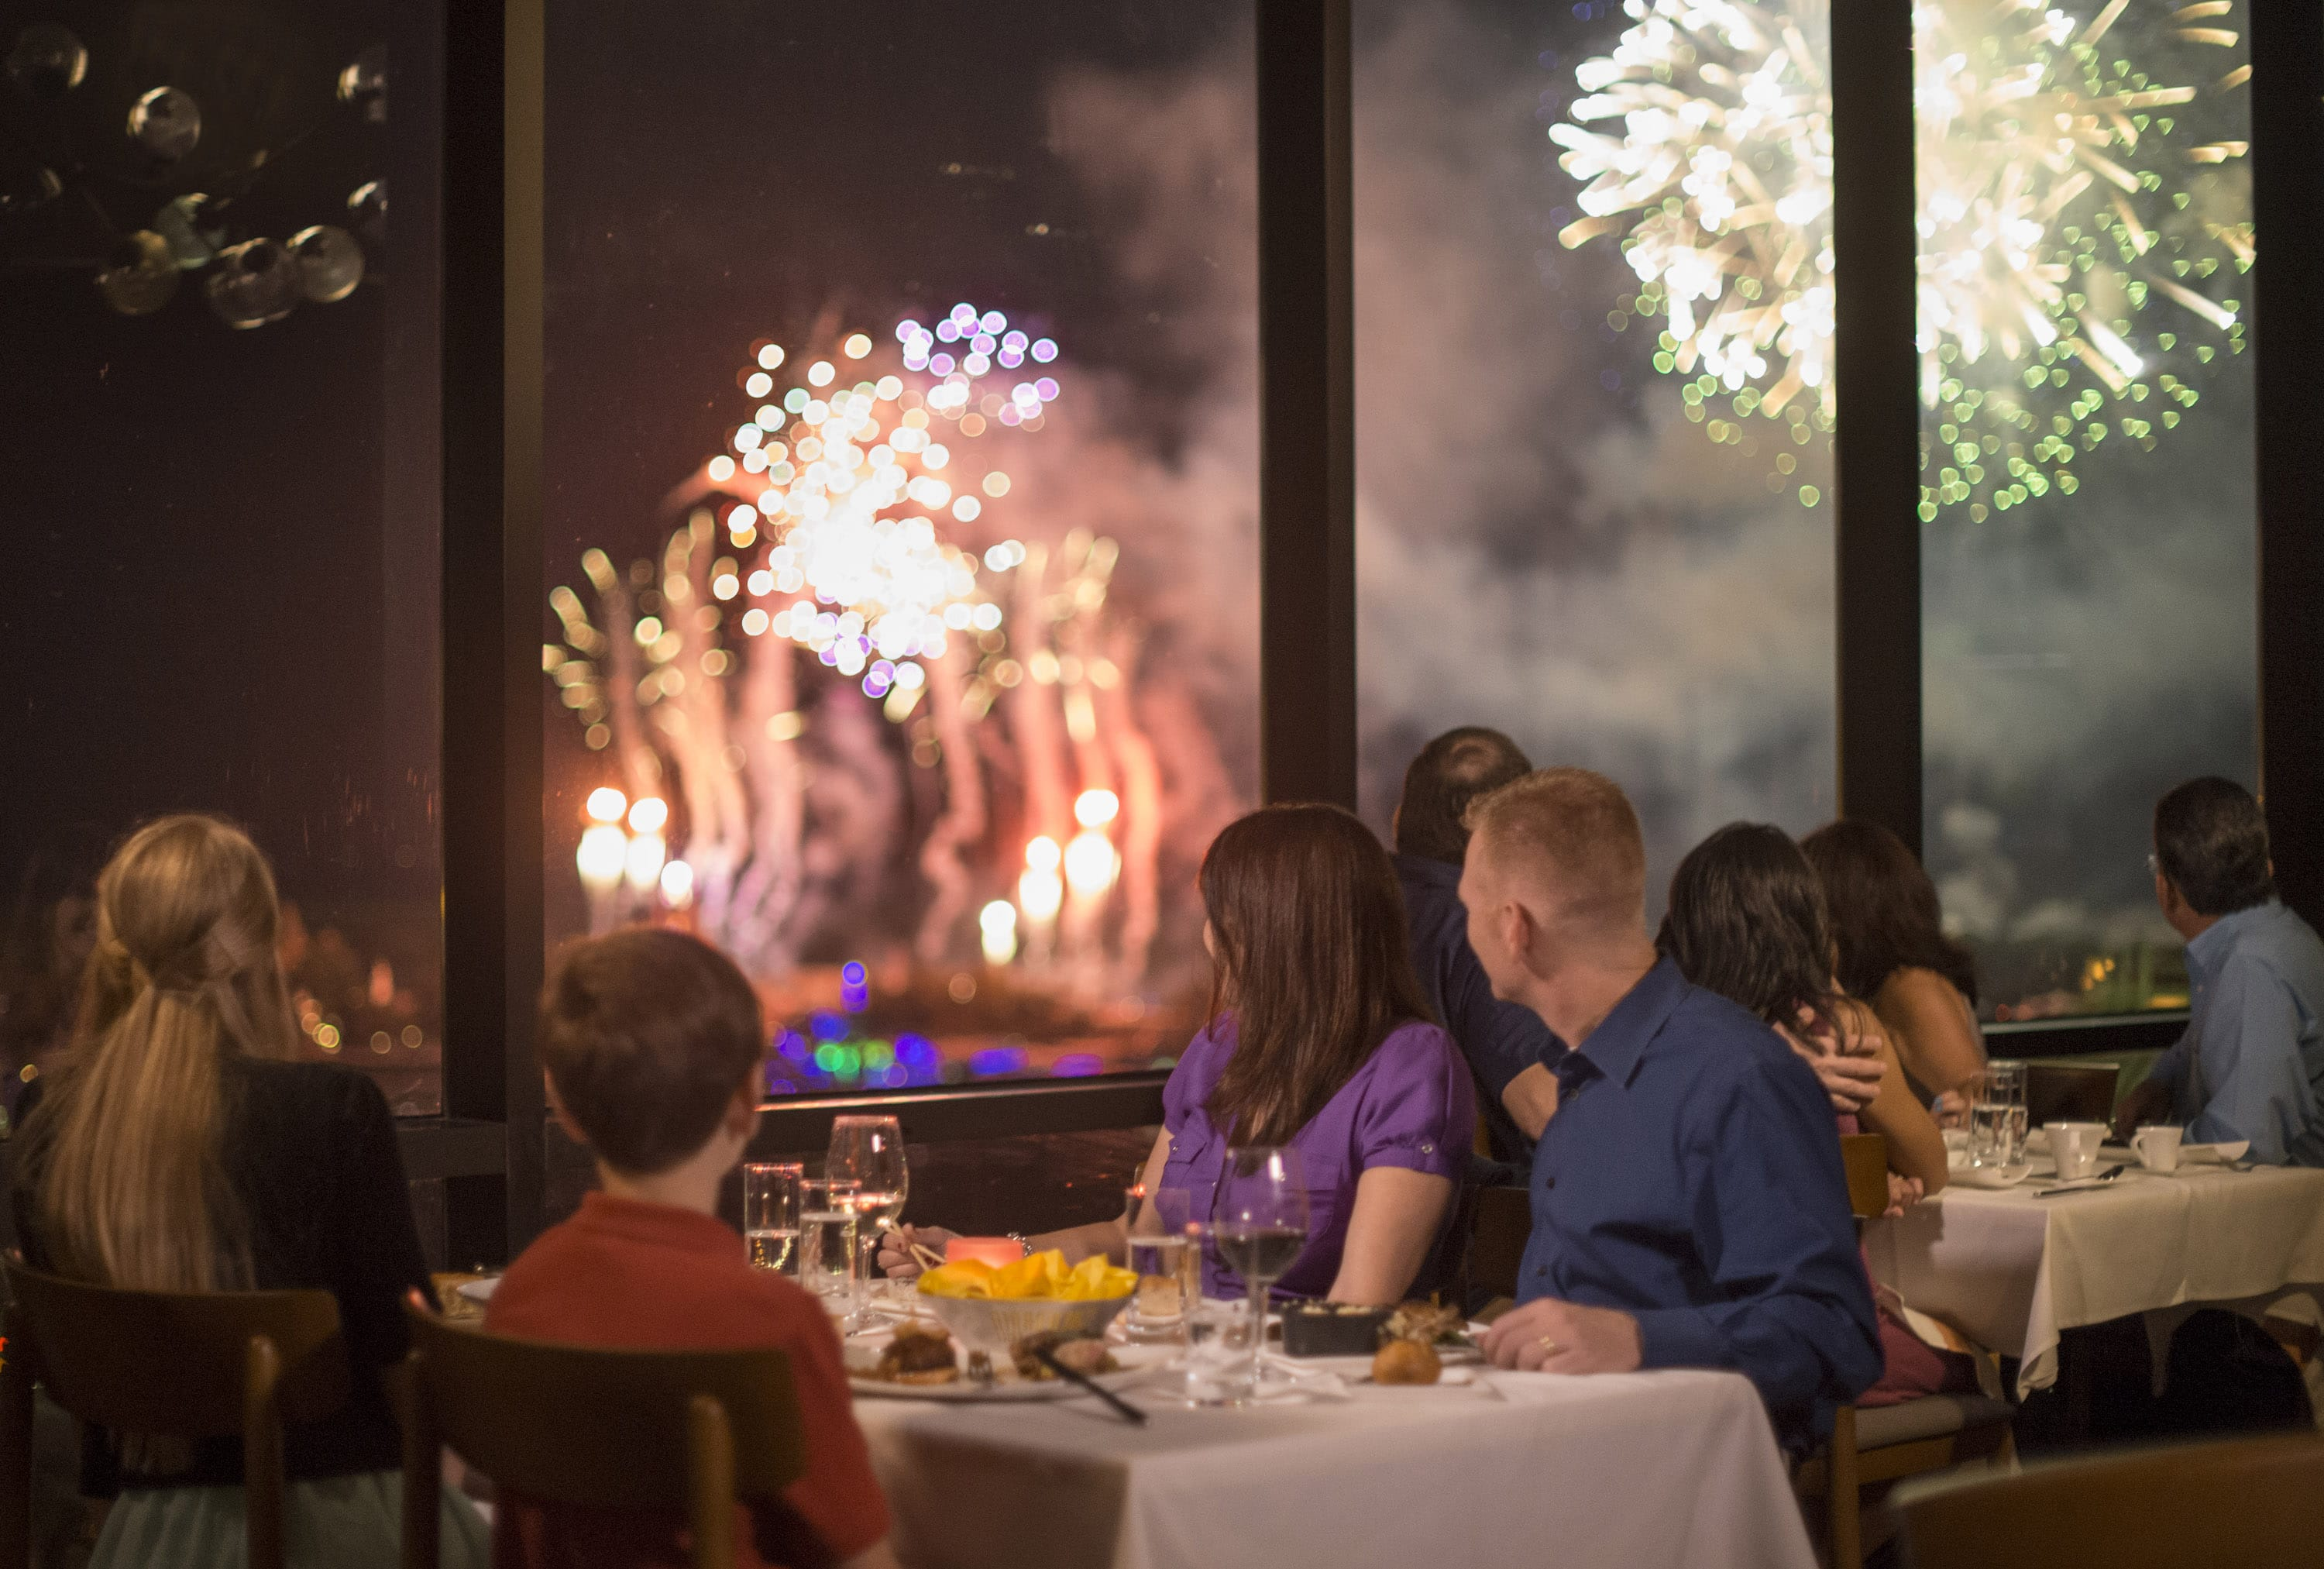 Dining at California Grill with a view of the Magic Kingdom Fireworks